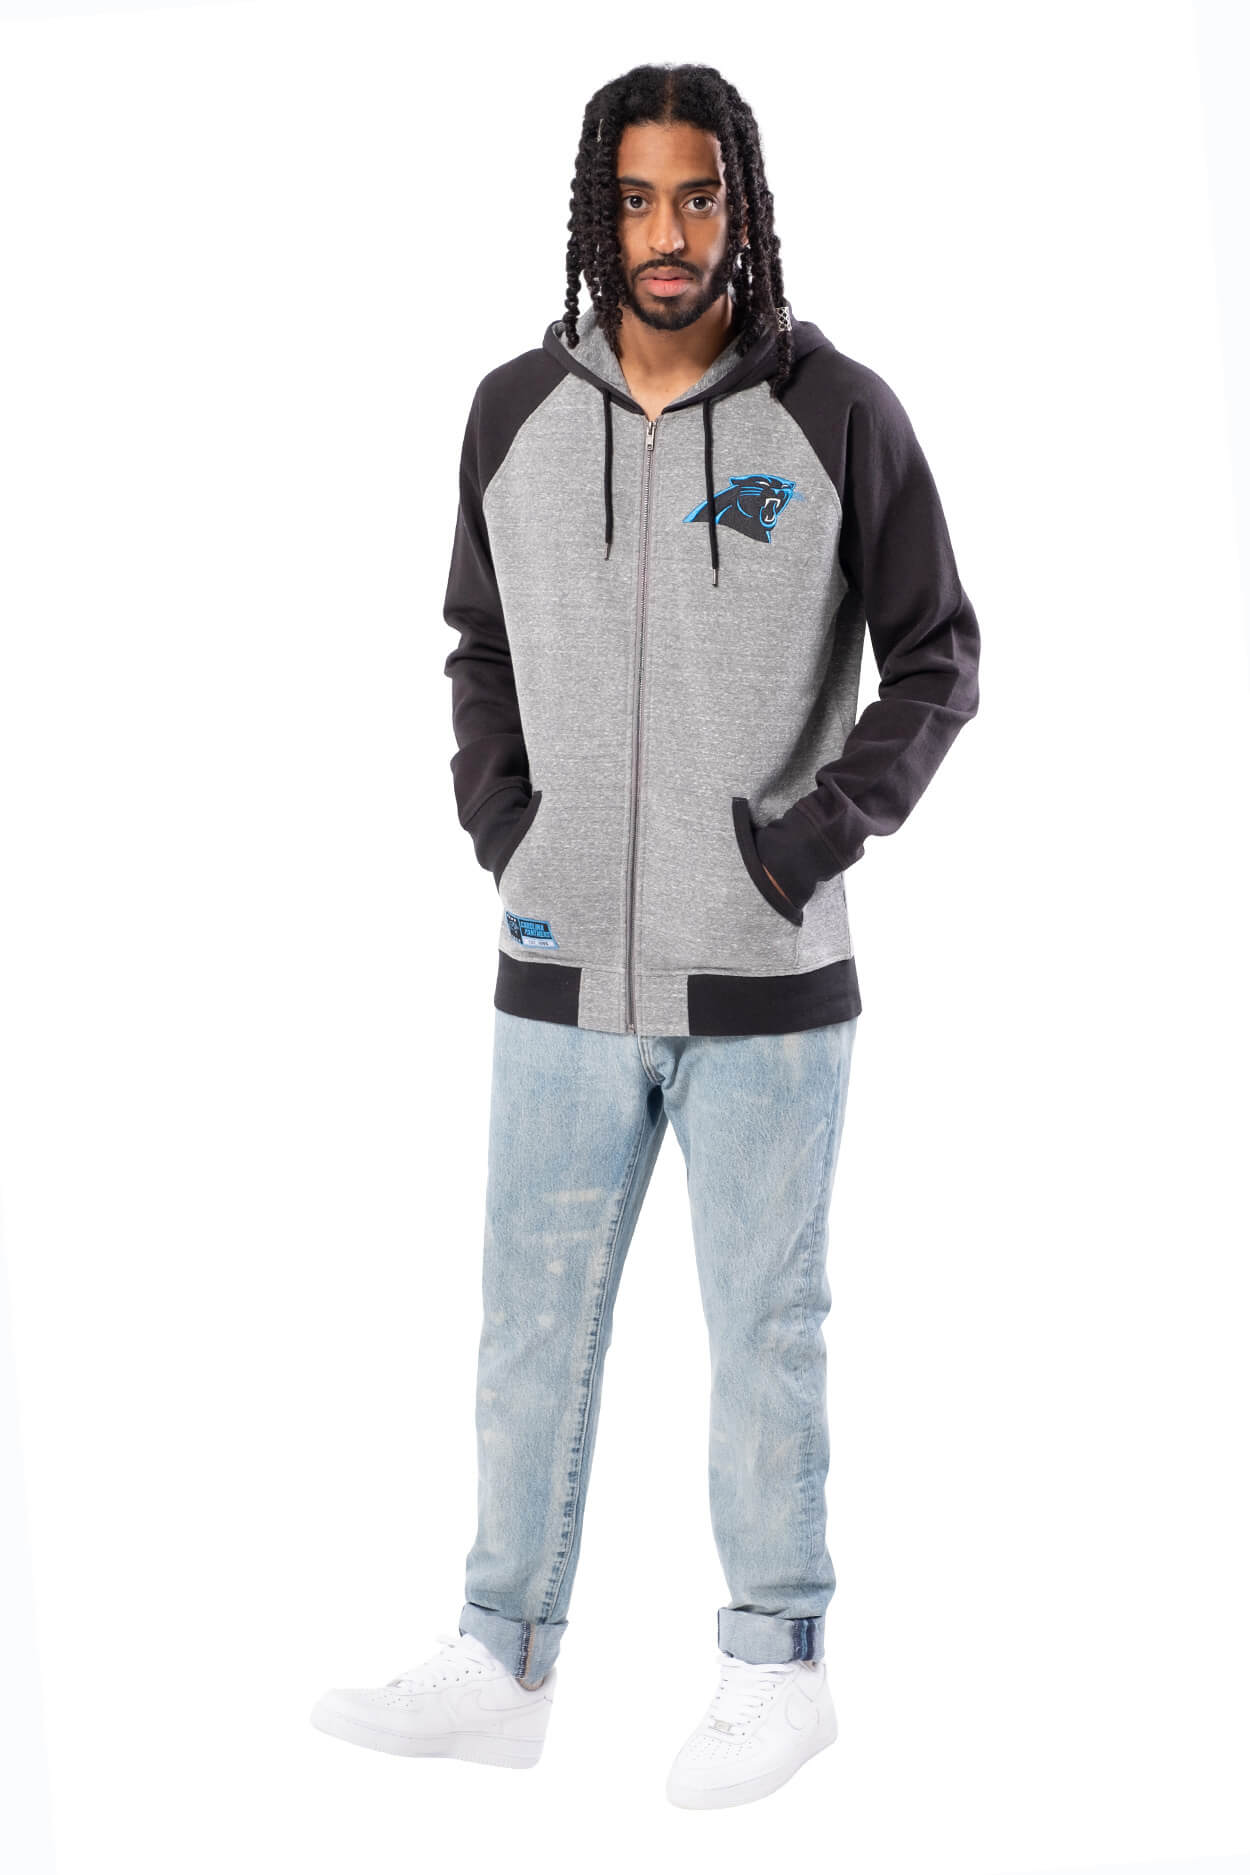 NFL Carolina Panthers Men's Full Zip Hoodie|Carolina Panthers